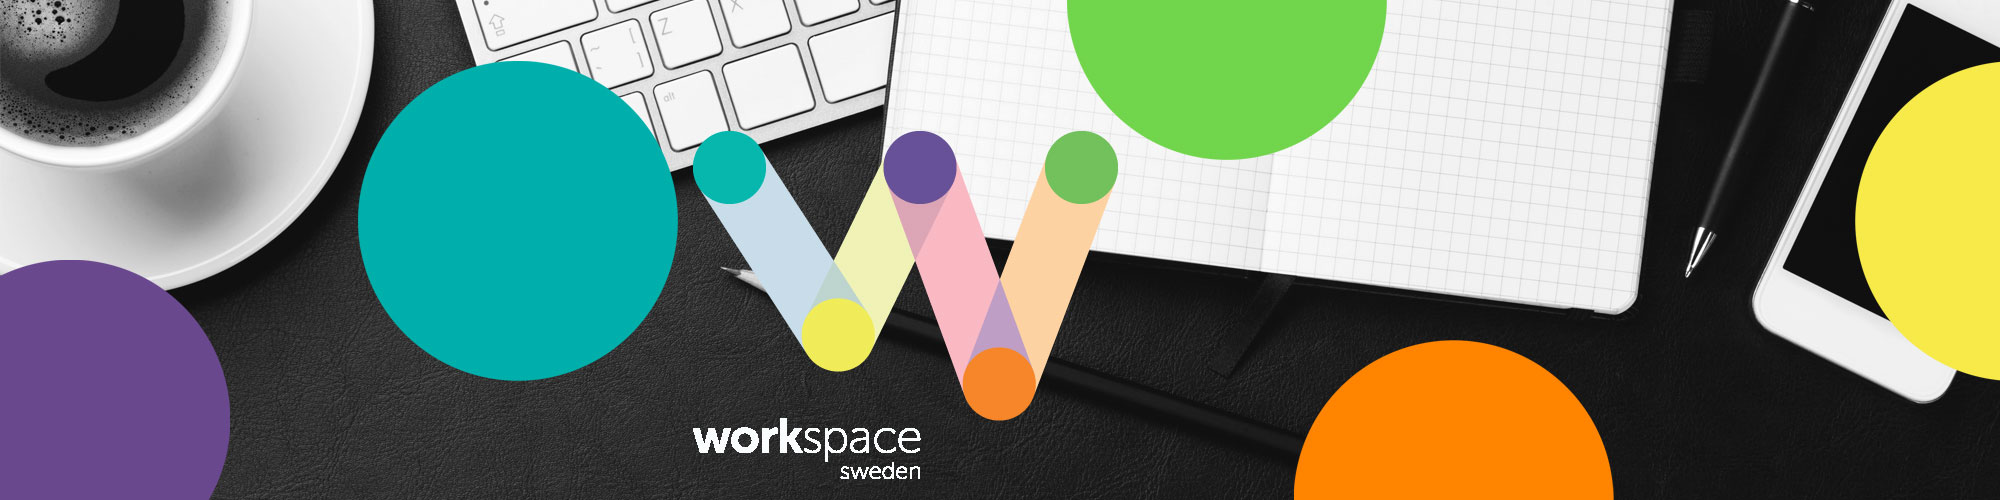 Header image for WorkSpace Sweden